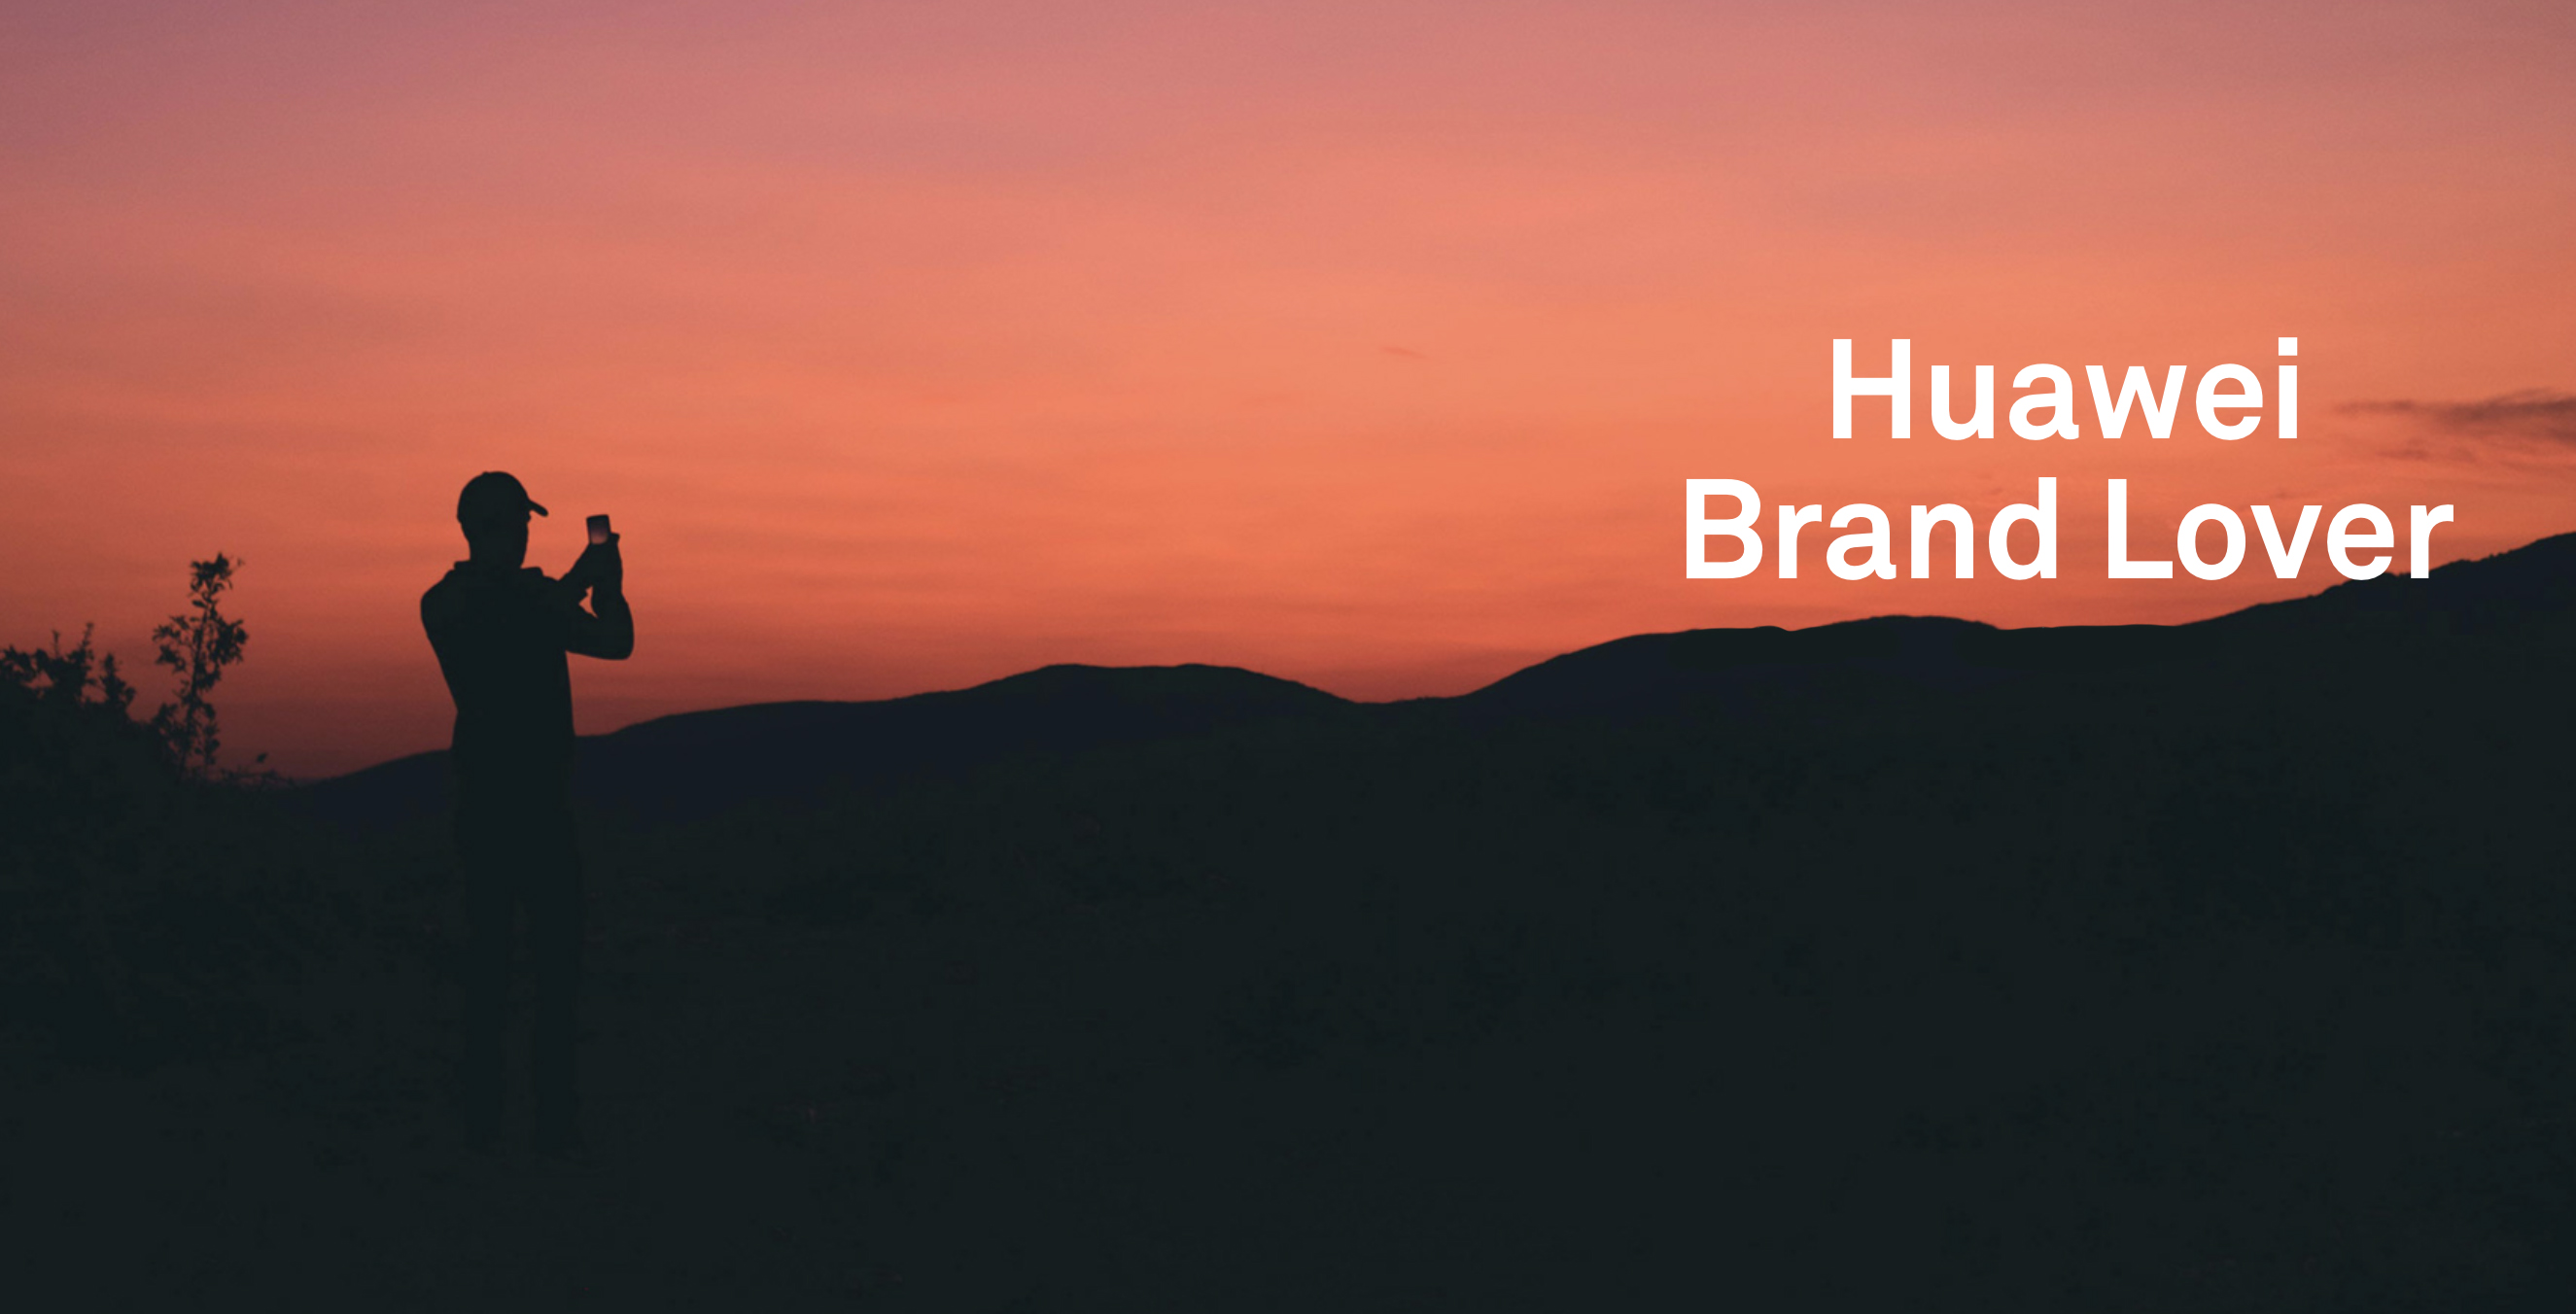 #HuaweiBrandLover